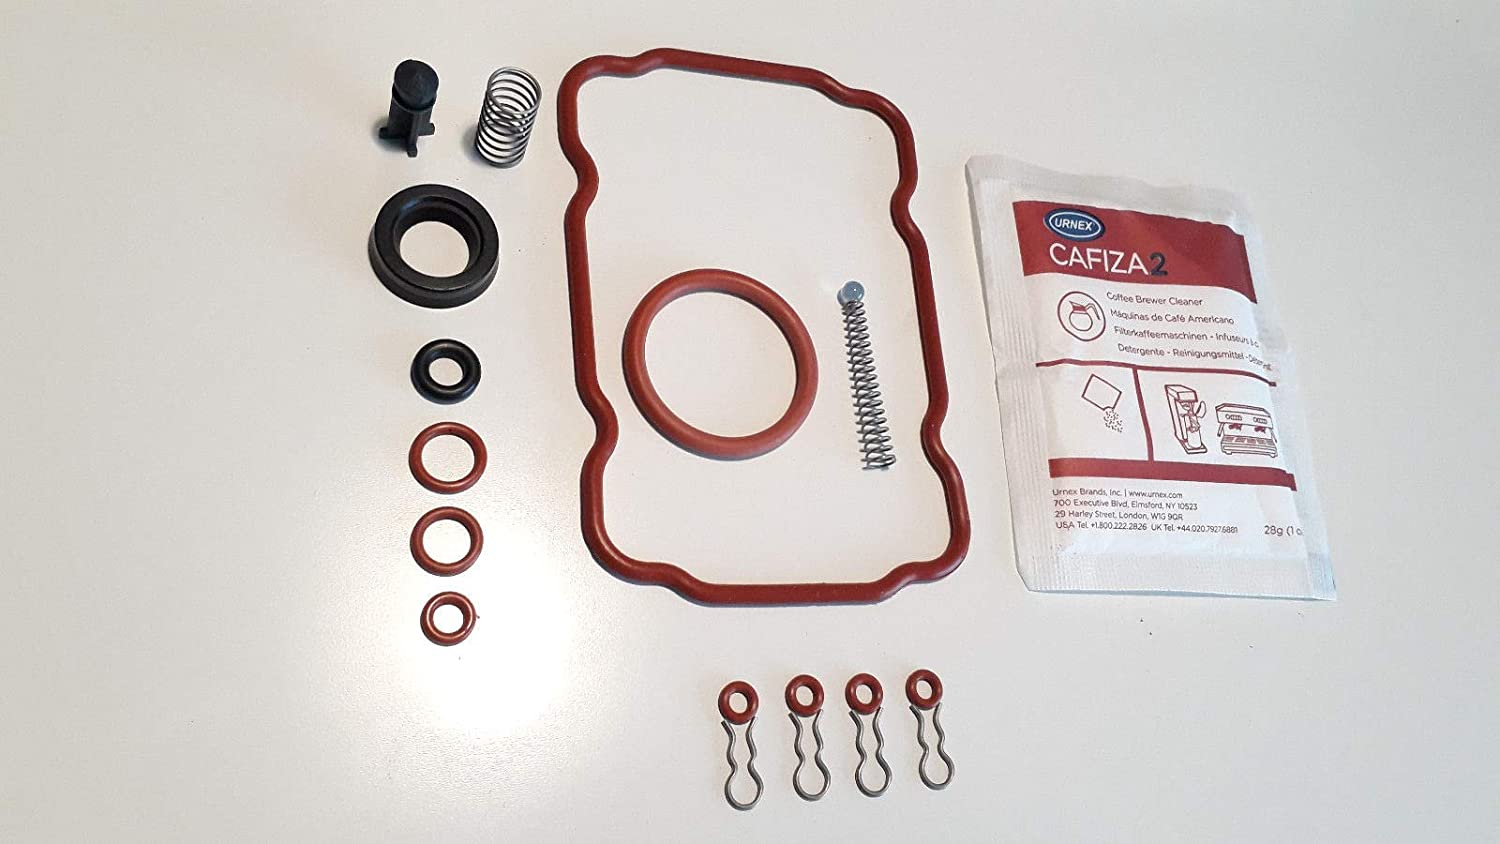 Amazon.com: Saeco parts set - Full Repair Kit for Vienna include Cafiza Urnex descaler: Kitchen & Dining